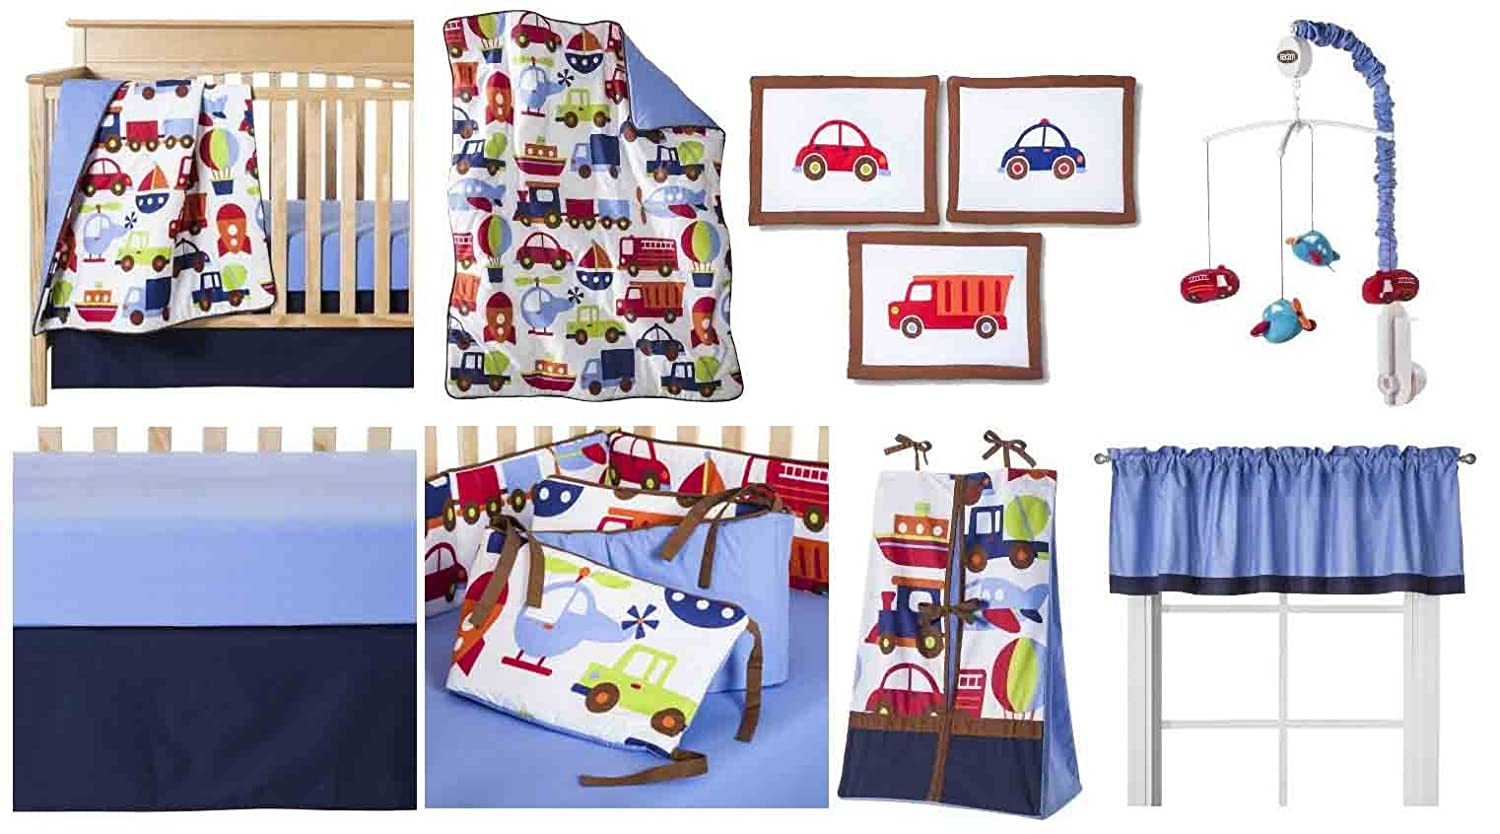 Bacati - Transportation Multicolor 10 Piece Crib Set 10-Piece Nursery-in-a-Bag Crib Bedding Set with Bumper Pad, 100 Percent Cotton Percale Boys Crib Bedding Set with Bumper Pad for US Standard Cribs